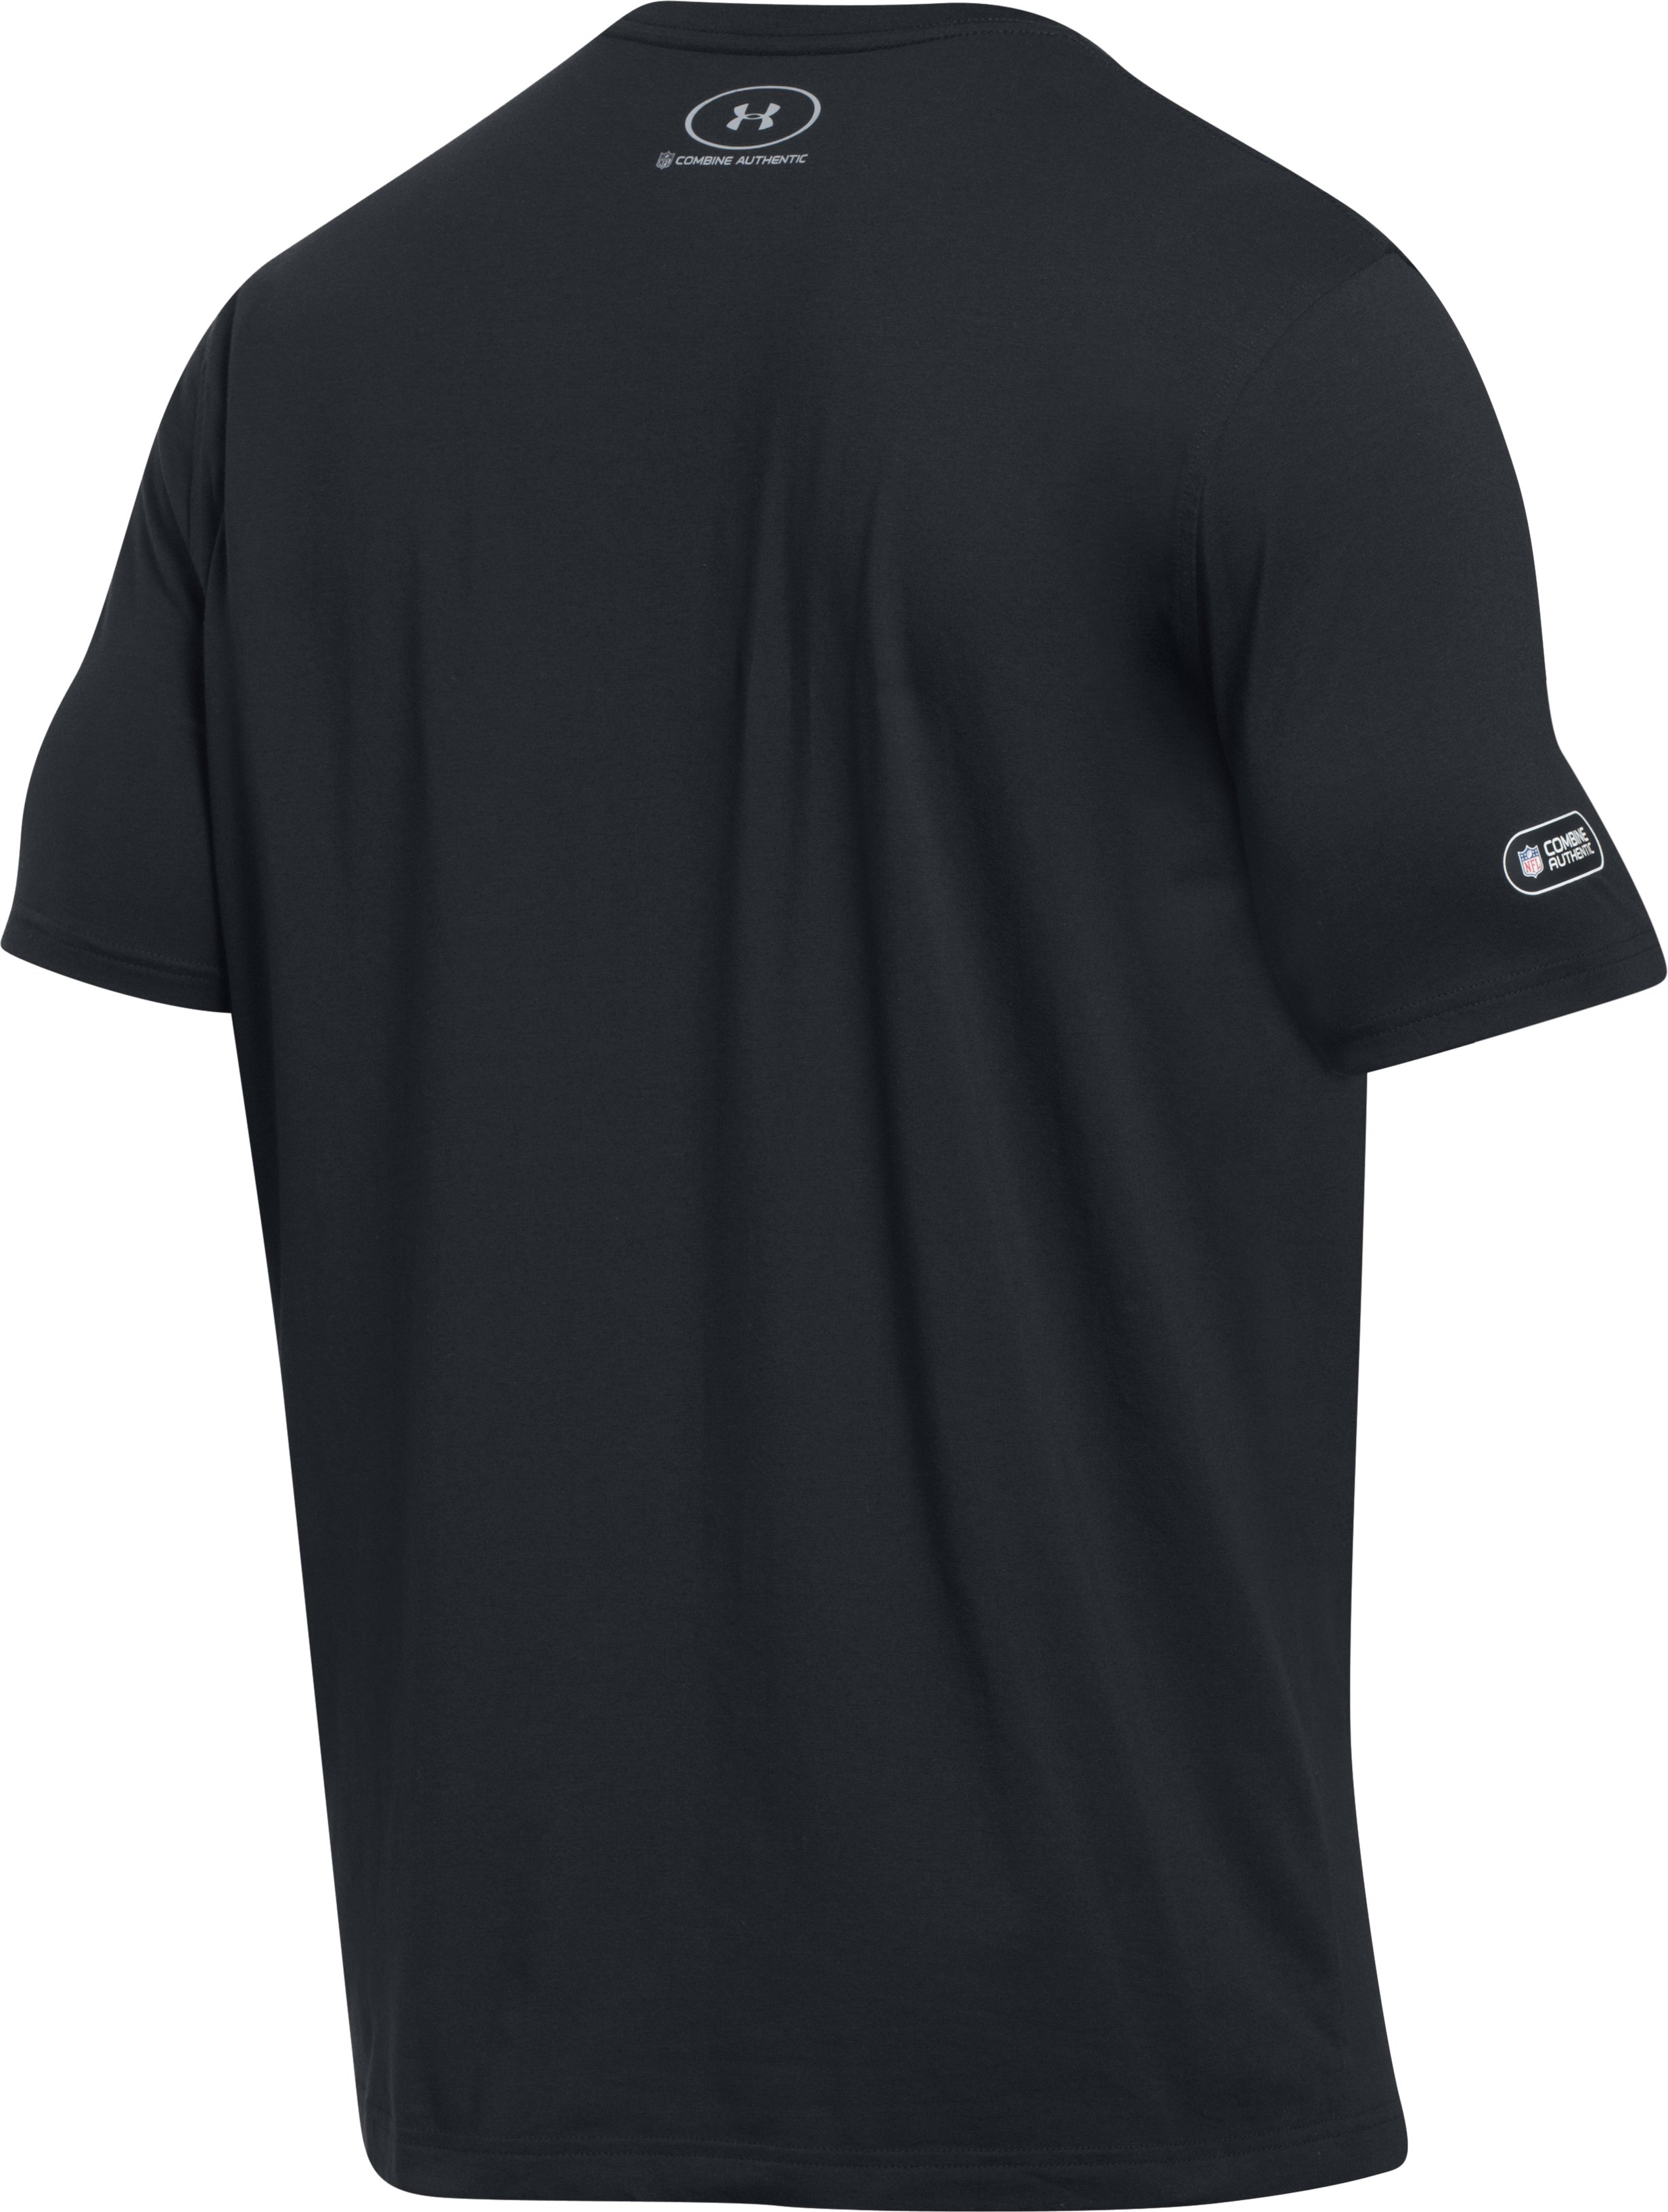 Men's NFL Combine Authentic UA Team T-Shirt, Baltimore Ravens, undefined